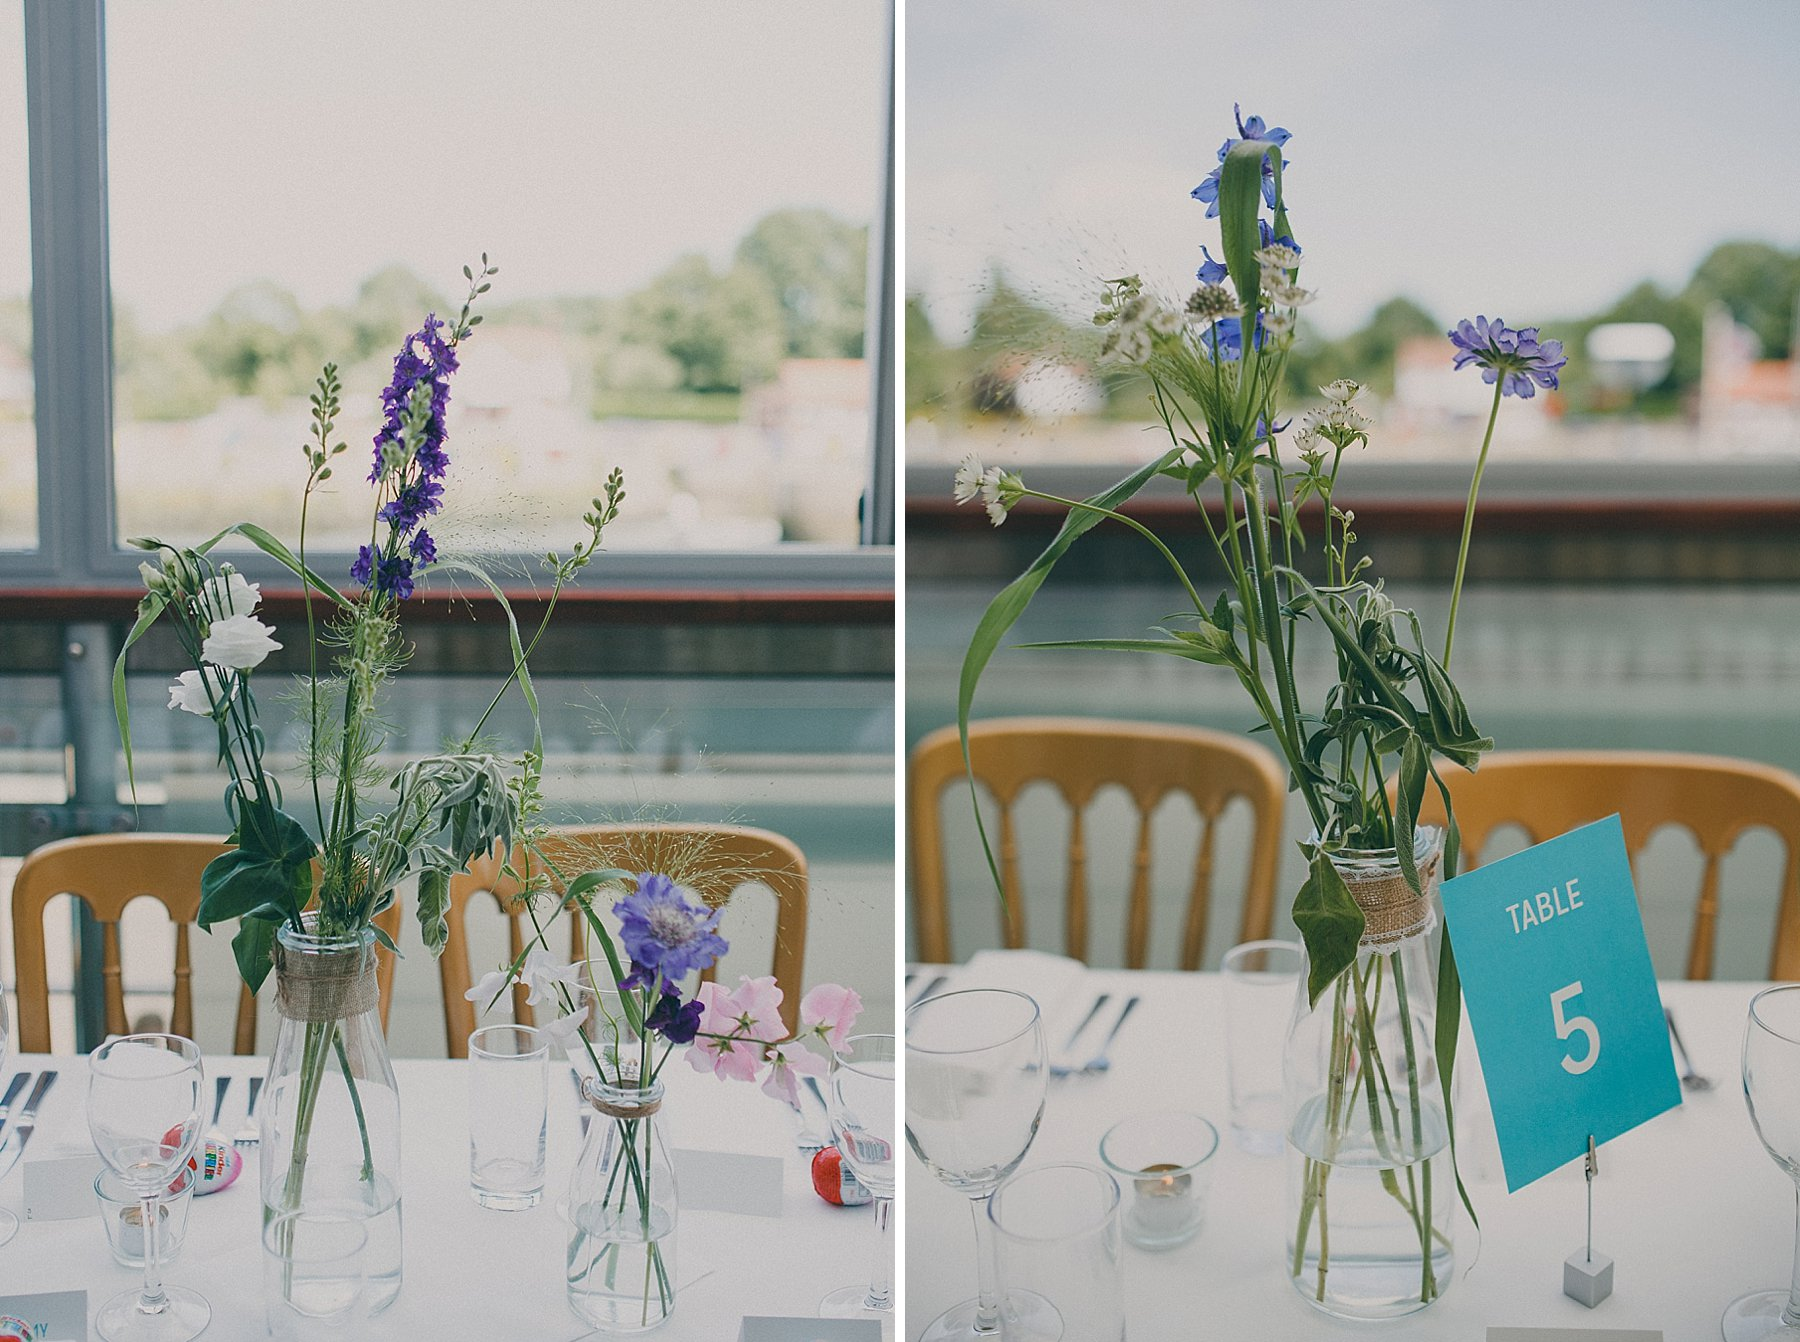 52 The wharf Teddington wedding table wildflower photos London.jpg